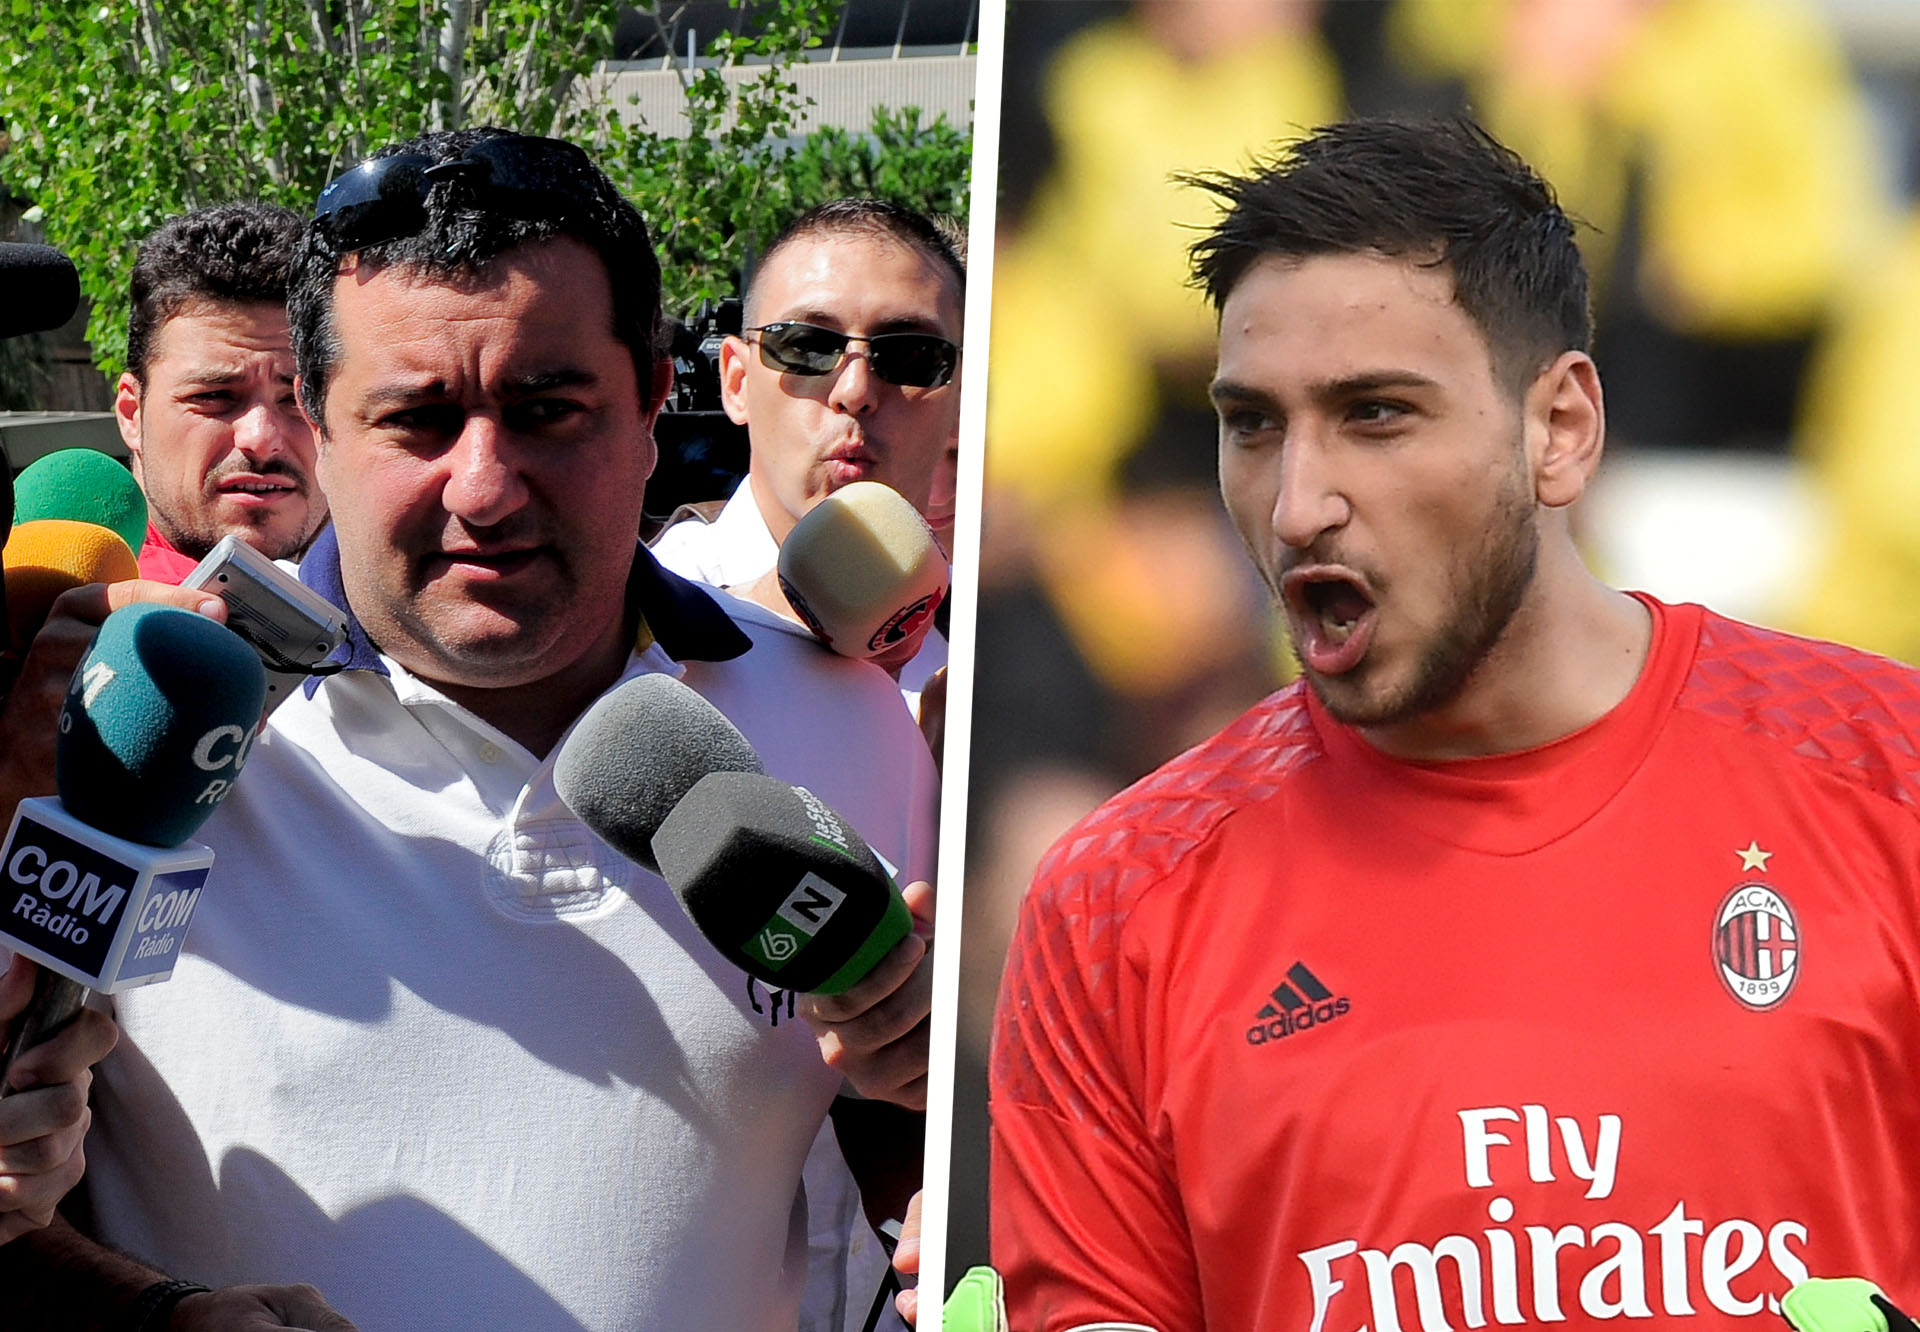 Fake money thrown at AC Milan goalkeeper Gianluigi Donnarumma